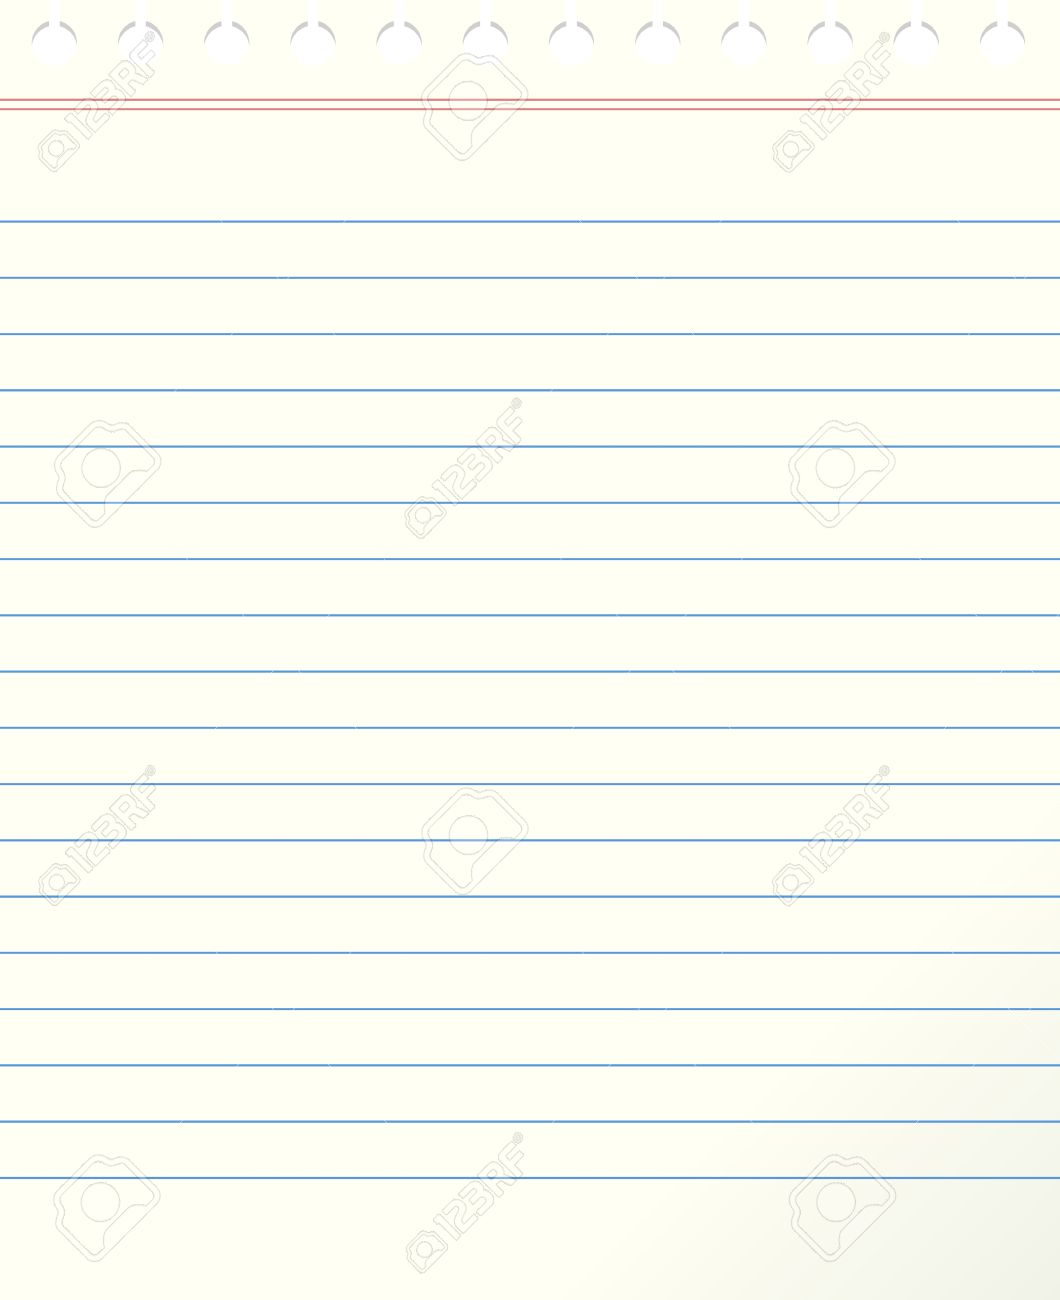 Blank Lined Paper Royalty Free Cliparts Vectors And – Lined Blank Paper